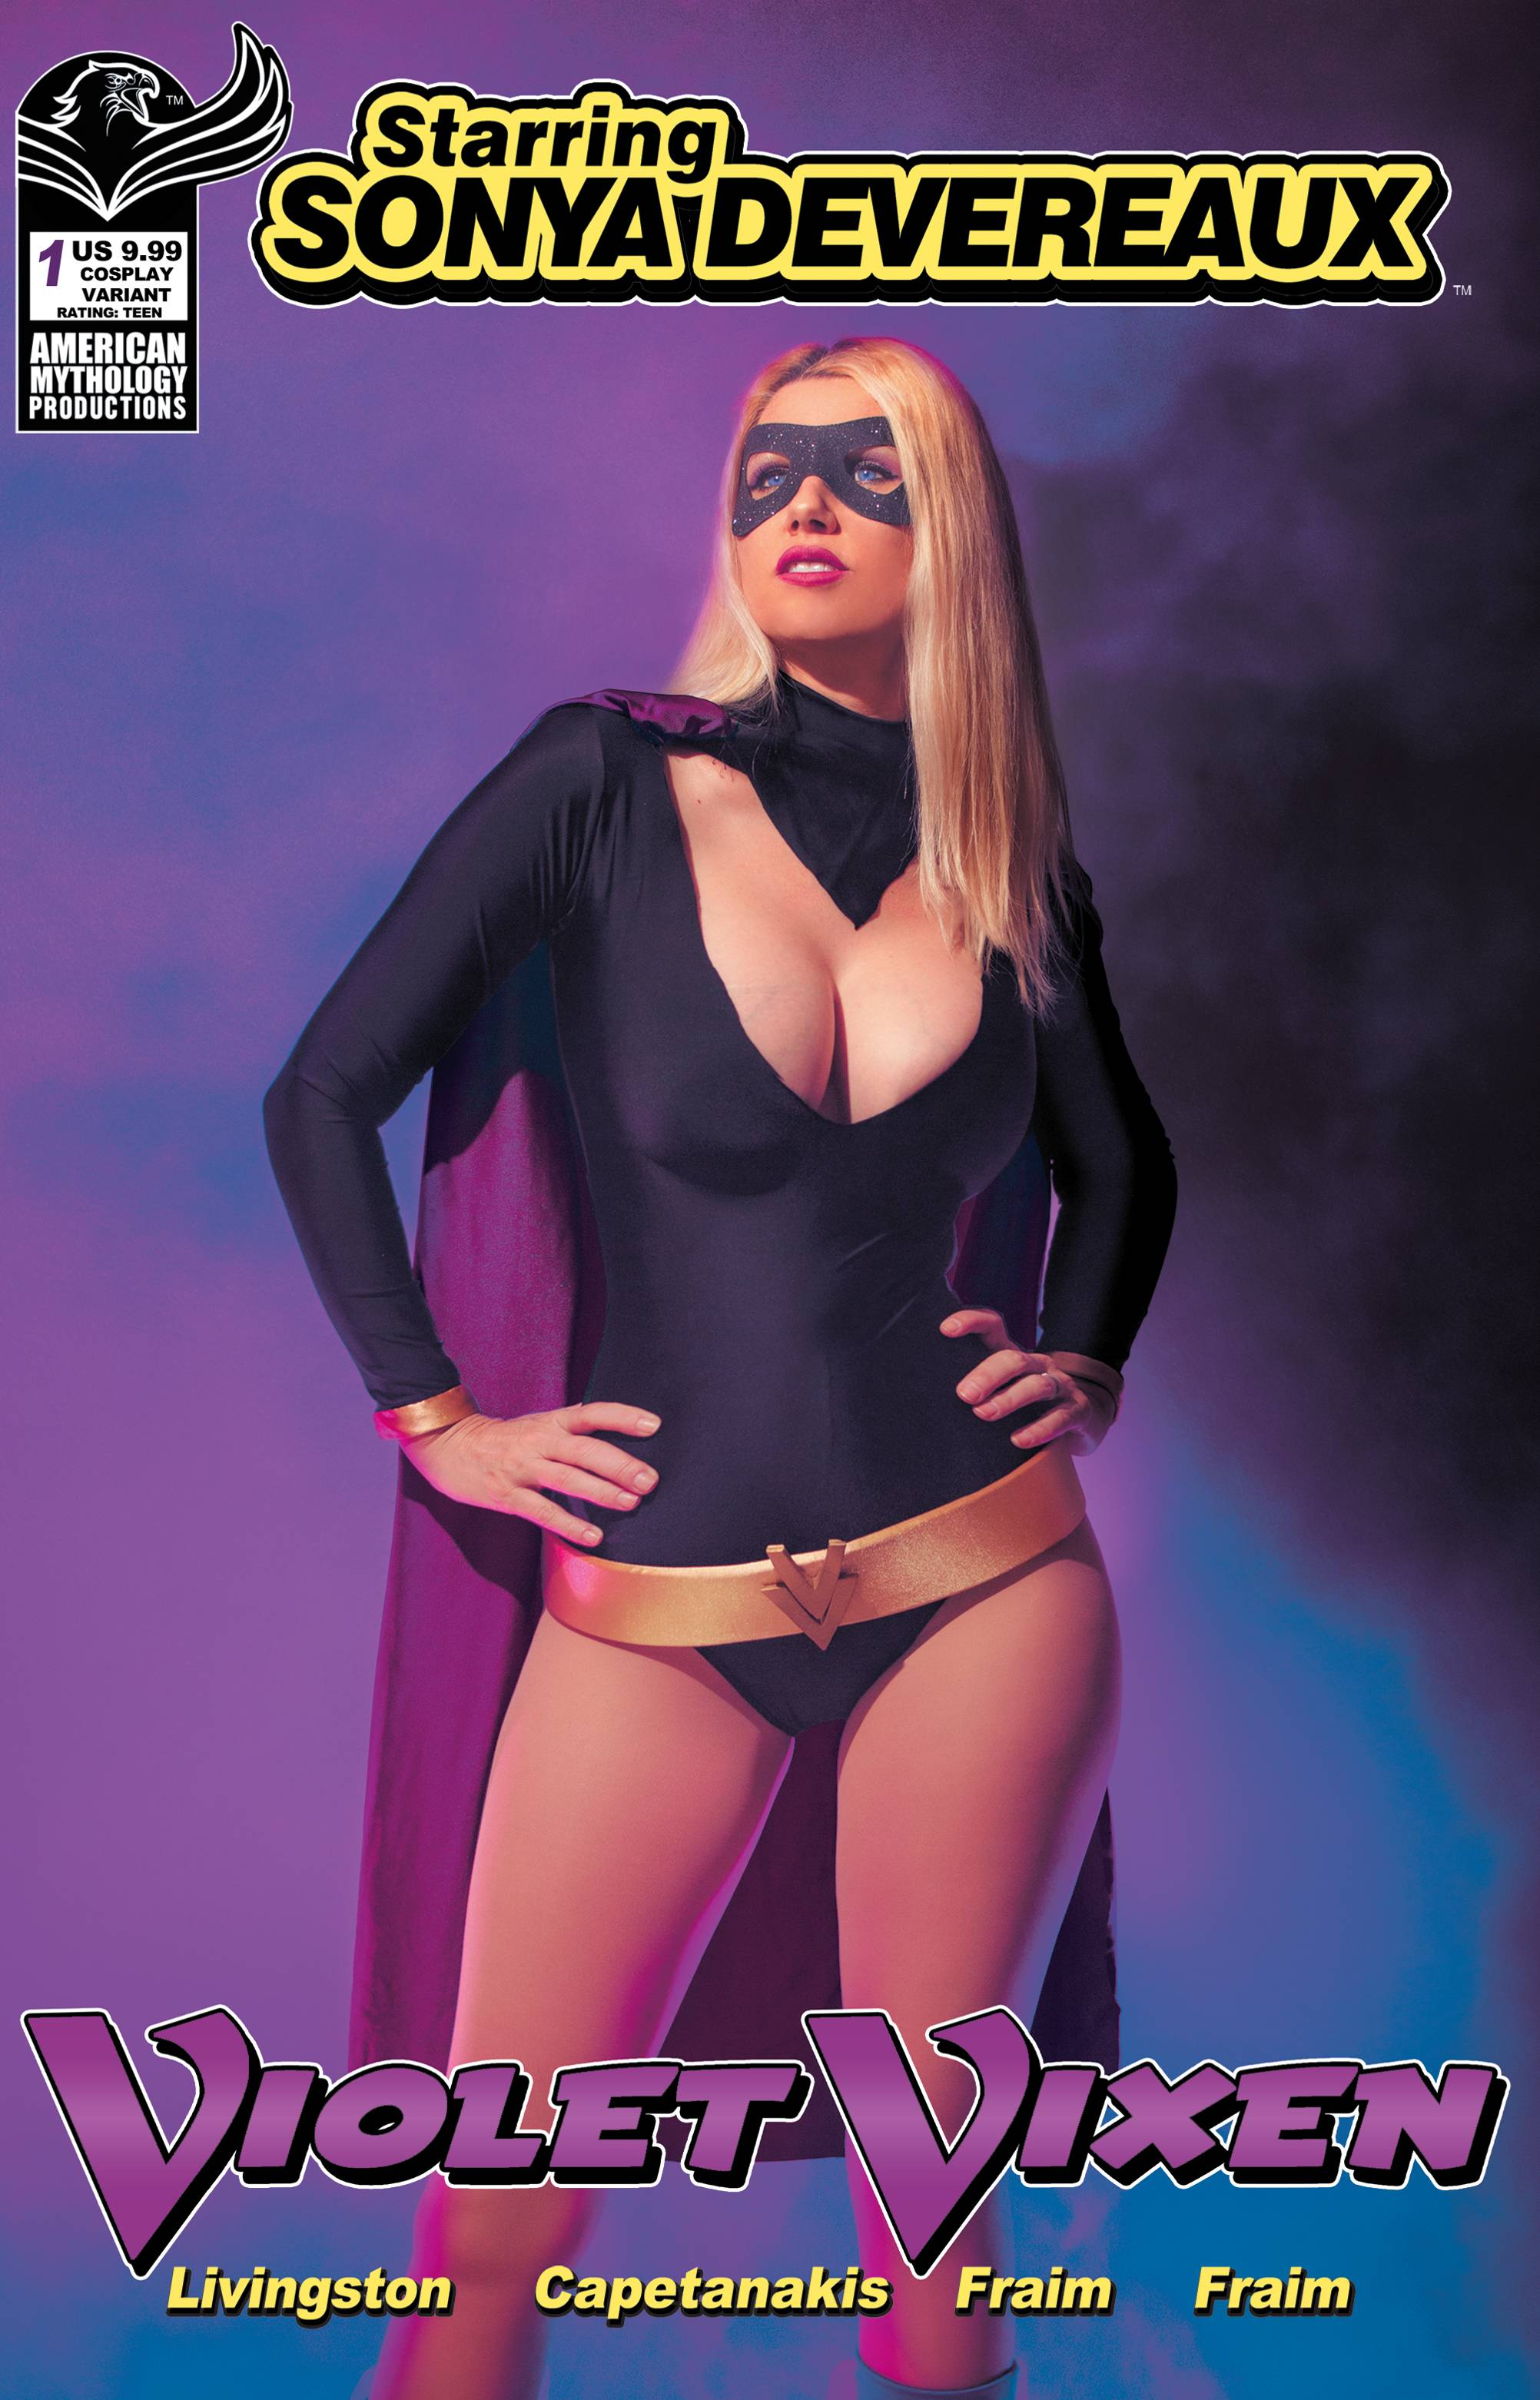 STARRING SONYA DEVEREAUX VIOLET VIXEN CVR C COSPLAY (MR)